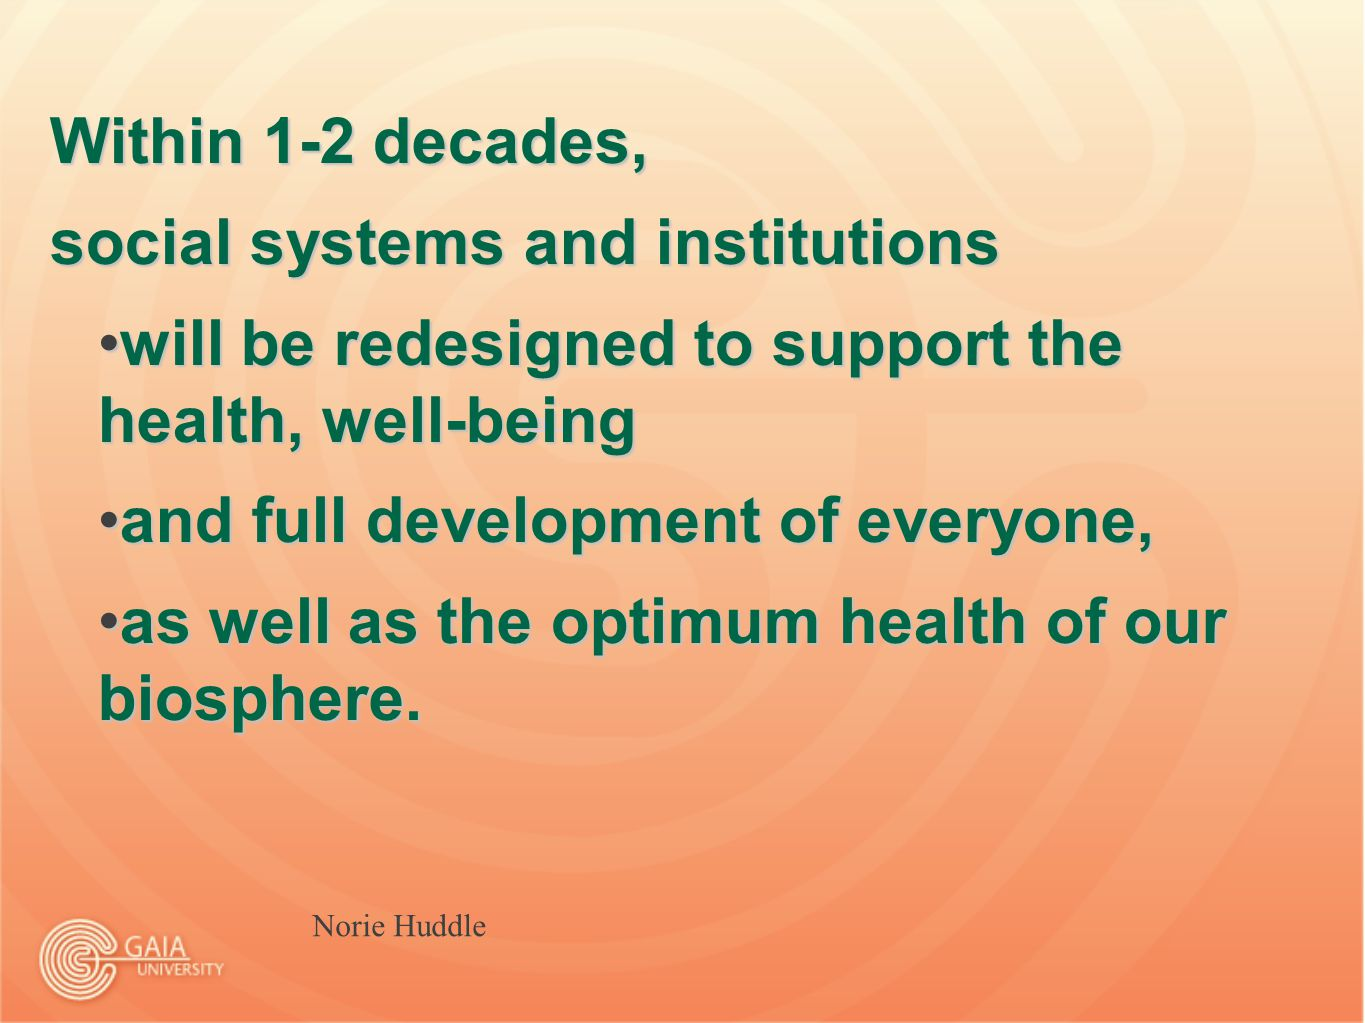 Folie 19 Within 1-2 decades, social systems and institutions will be redesigned to support the health, well-beingwill be redesigned to support the health, well-being and full development of everyone,and full development of everyone, as well as the optimum health of our biosphere.as well as the optimum health of our biosphere.